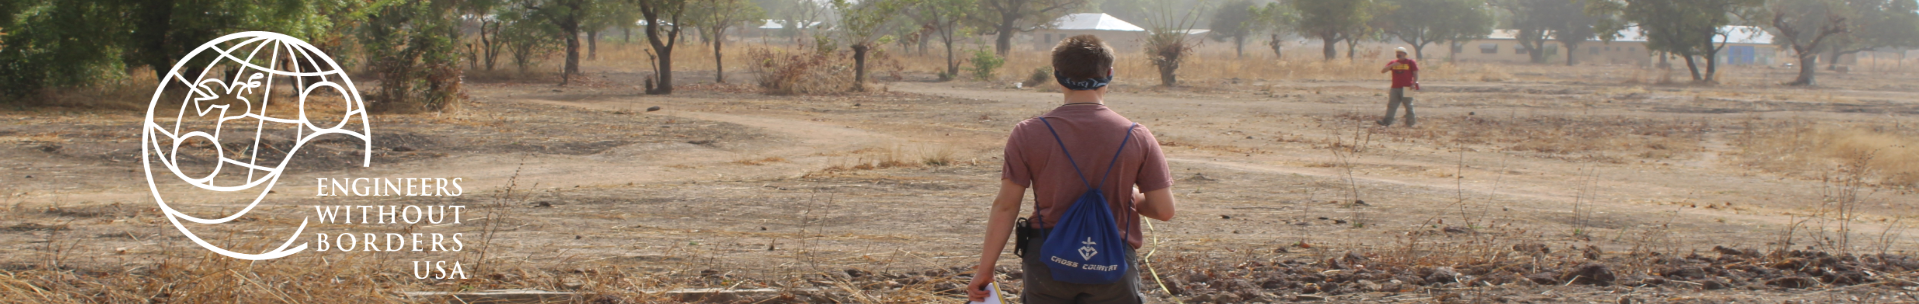 Engineers Without Borders Header